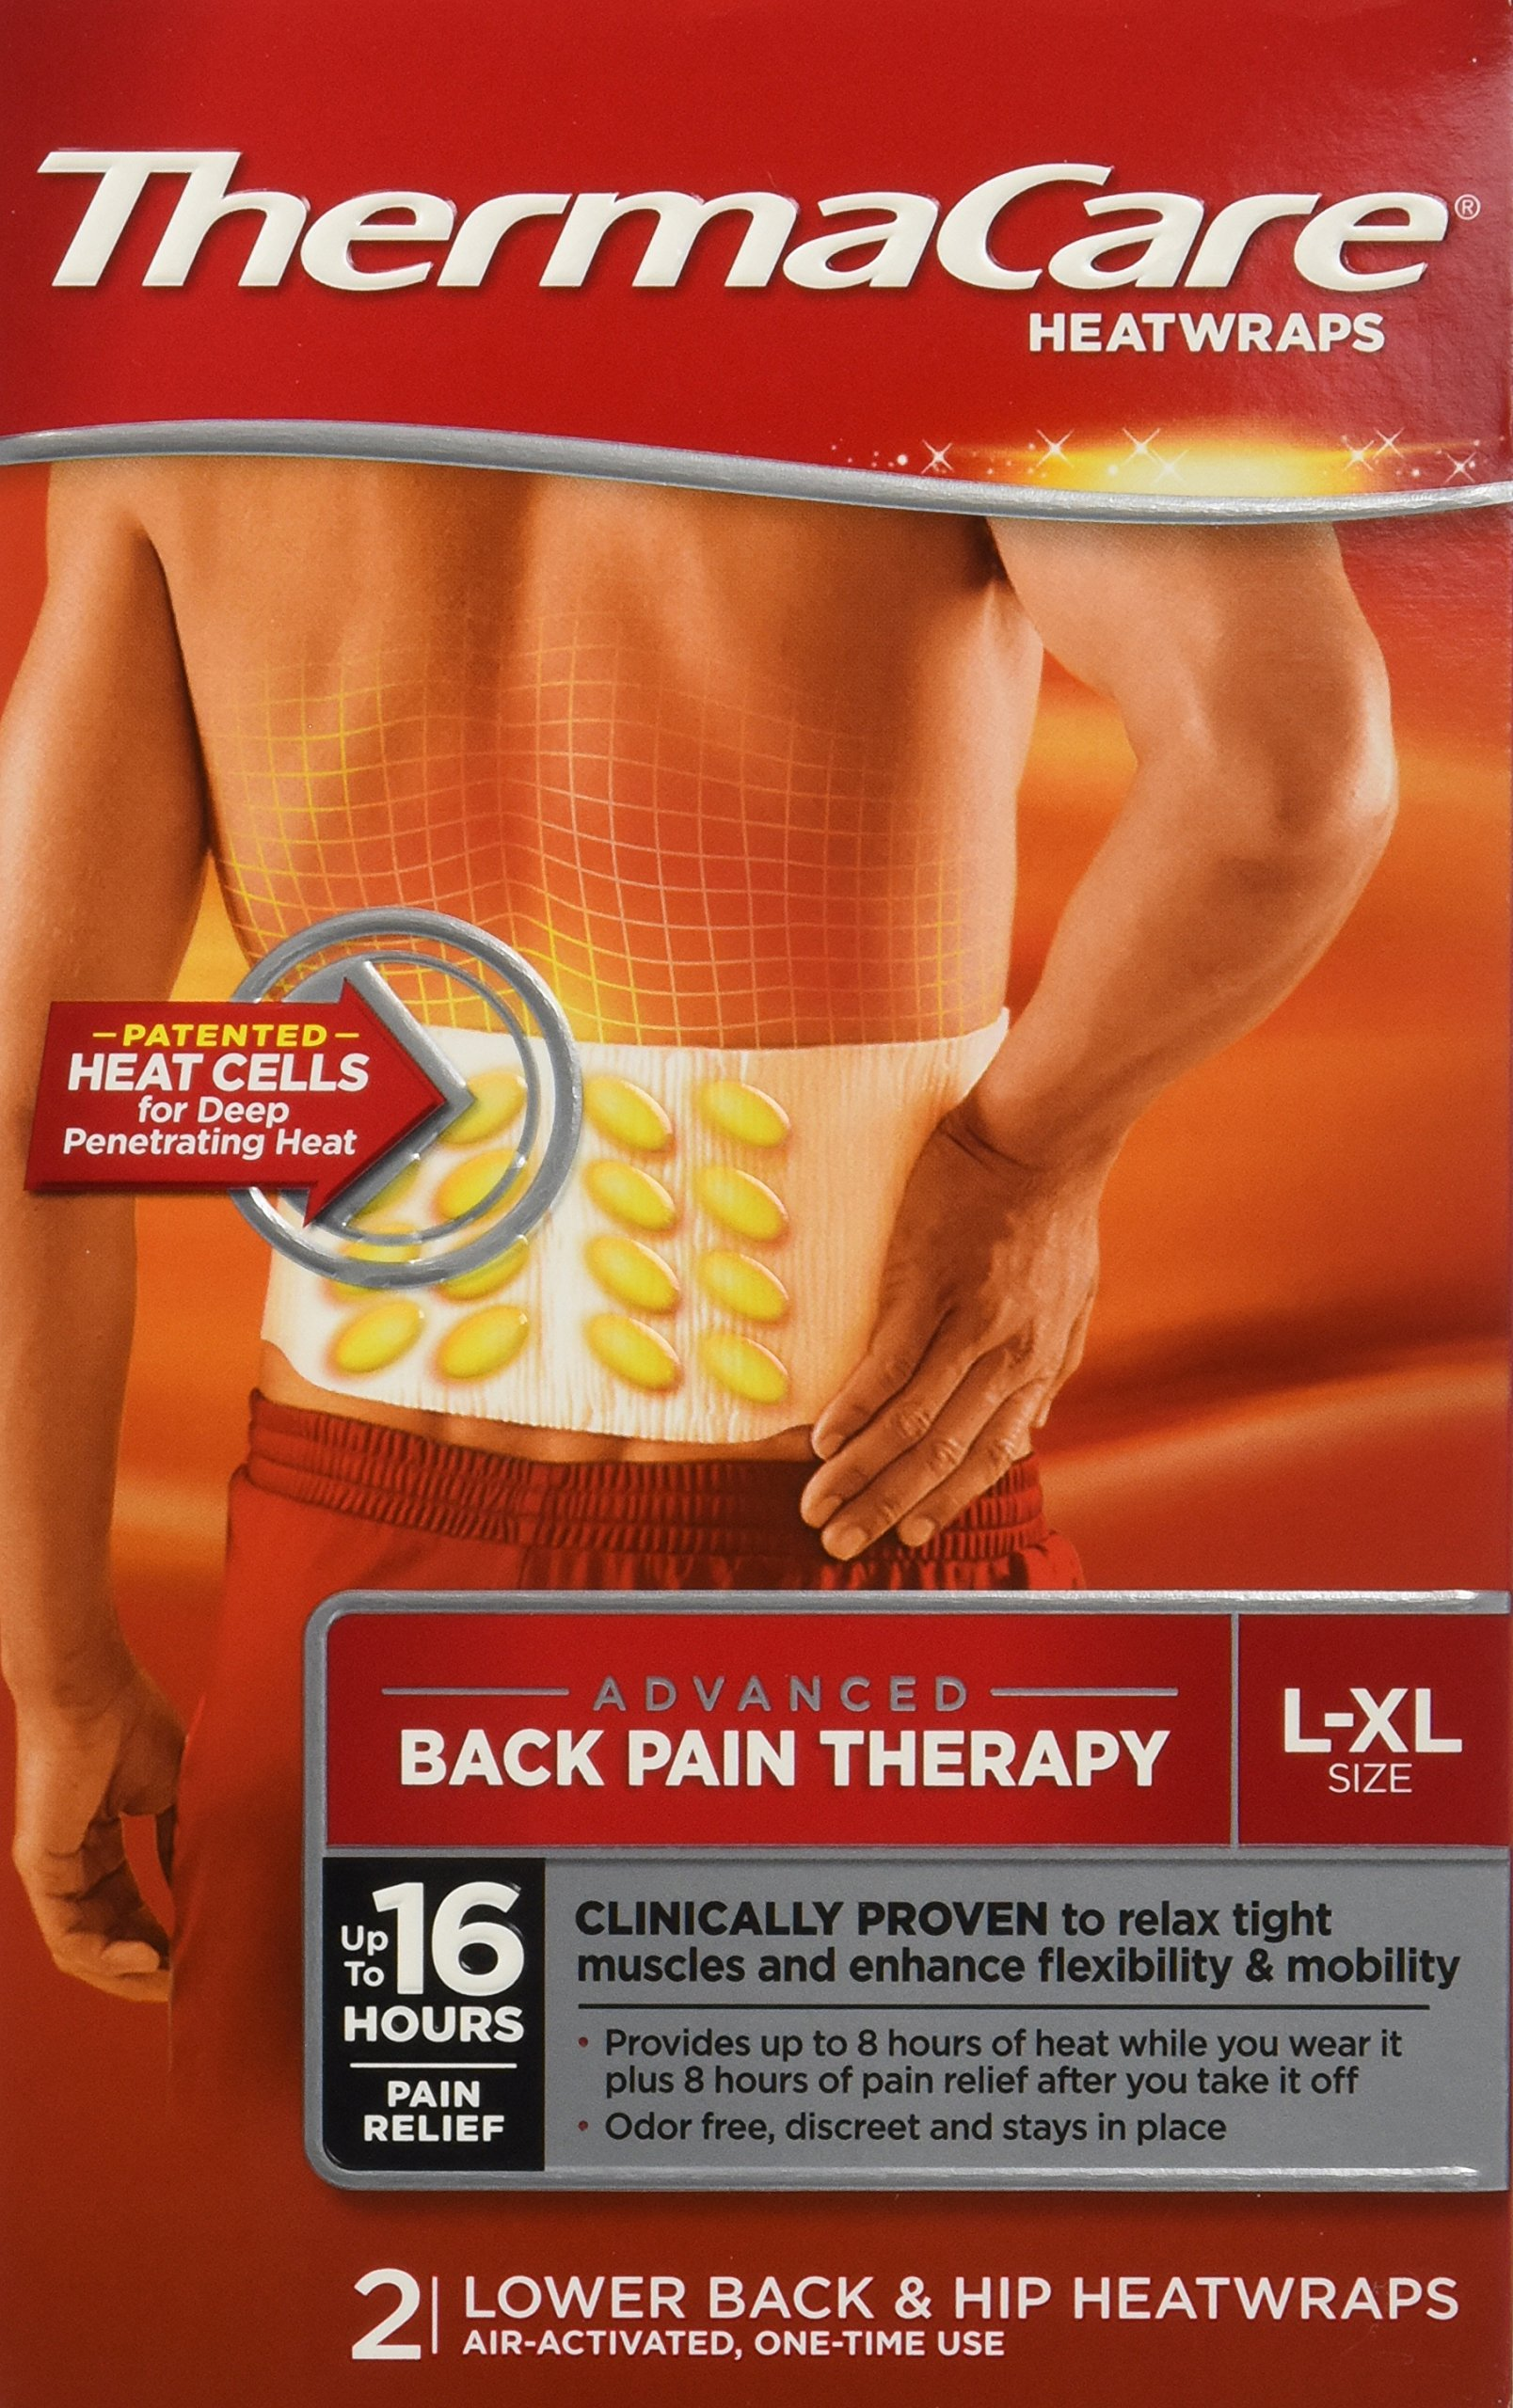 Thermacare Heatwraps Lower Back & Hip, L-XL-6 Count by ThermaCare